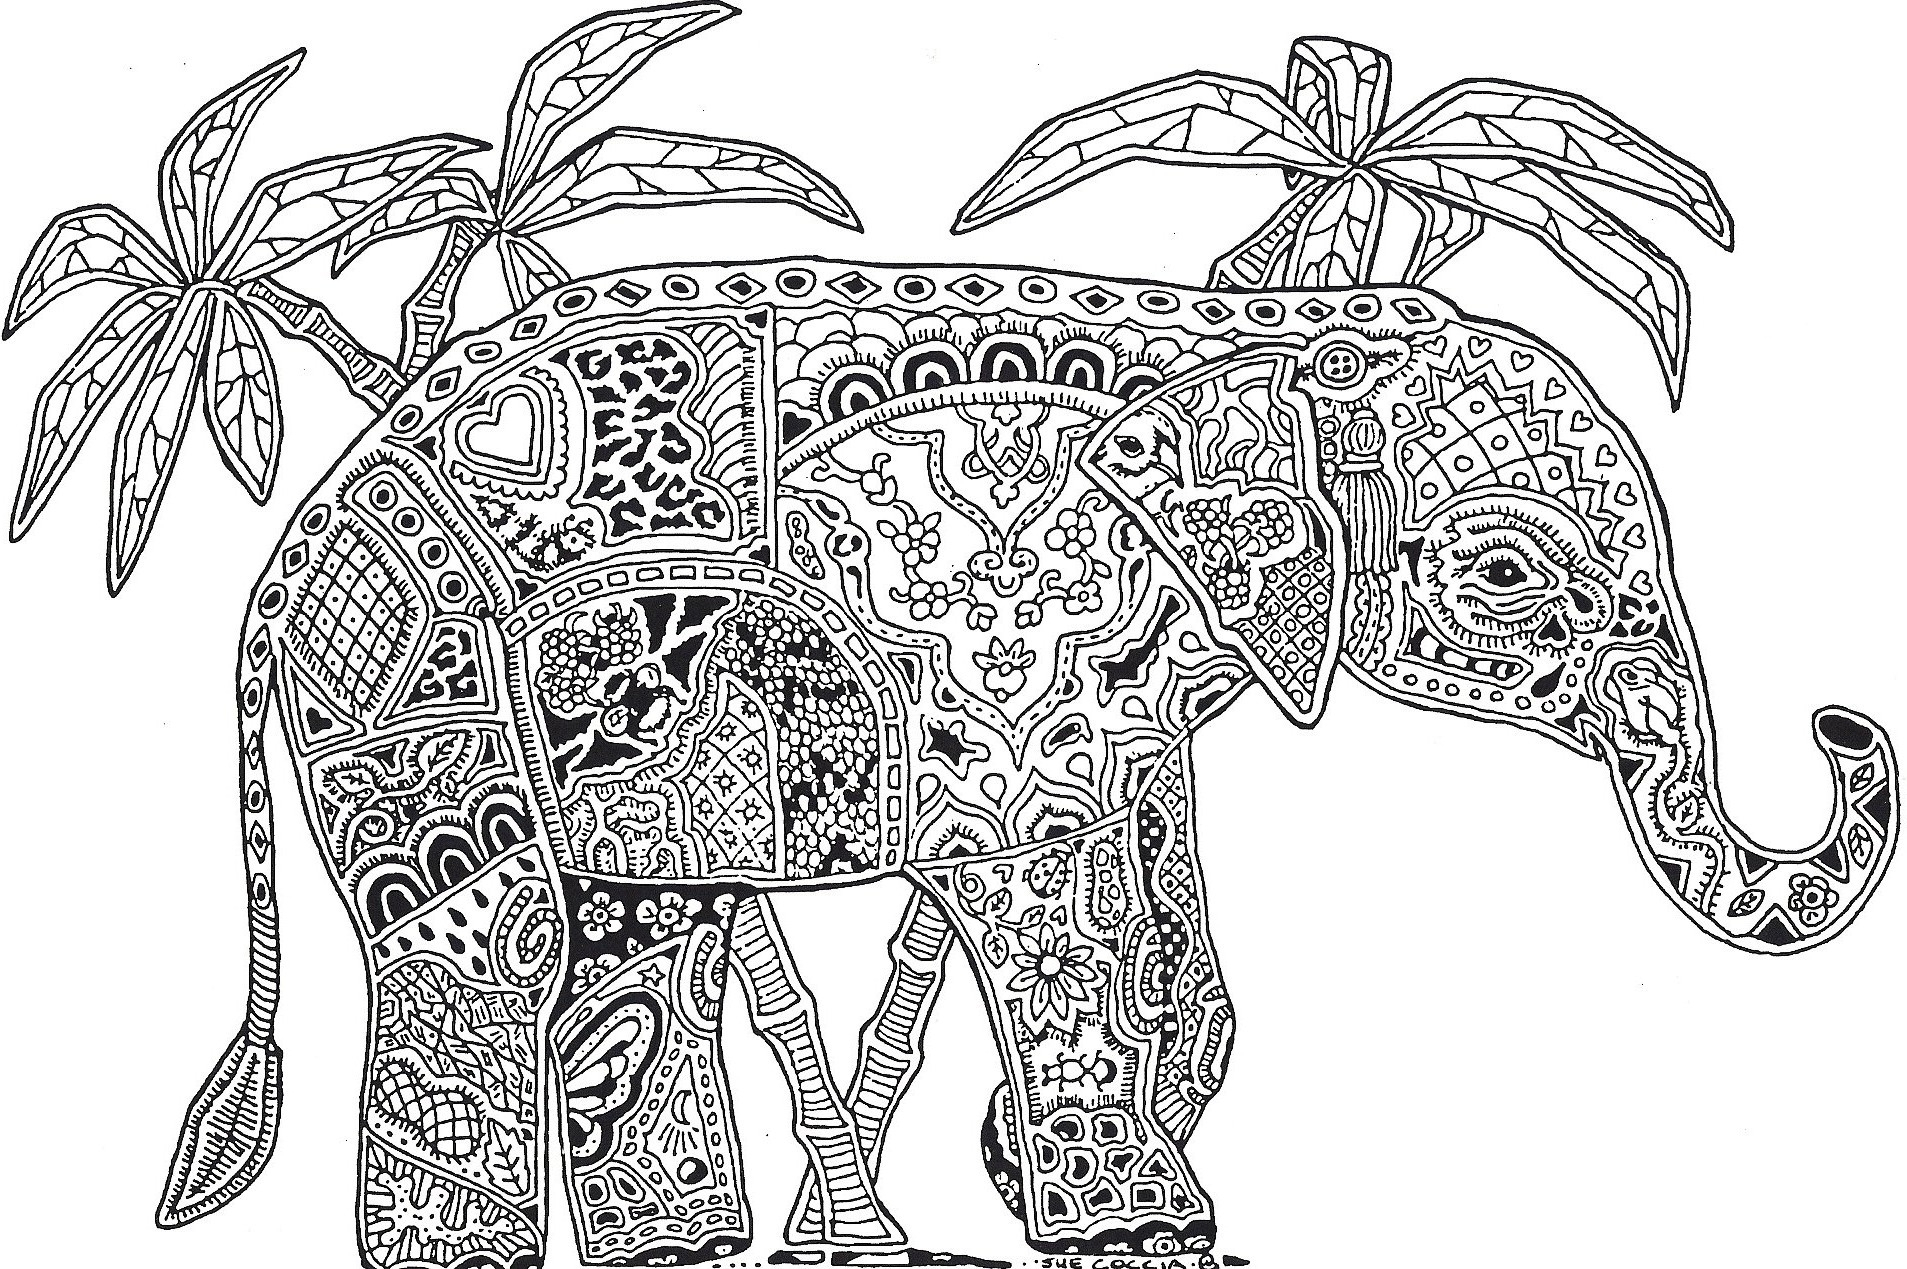 Elephant Mandala Coloring Pages Collection 15n - Save it to your computer